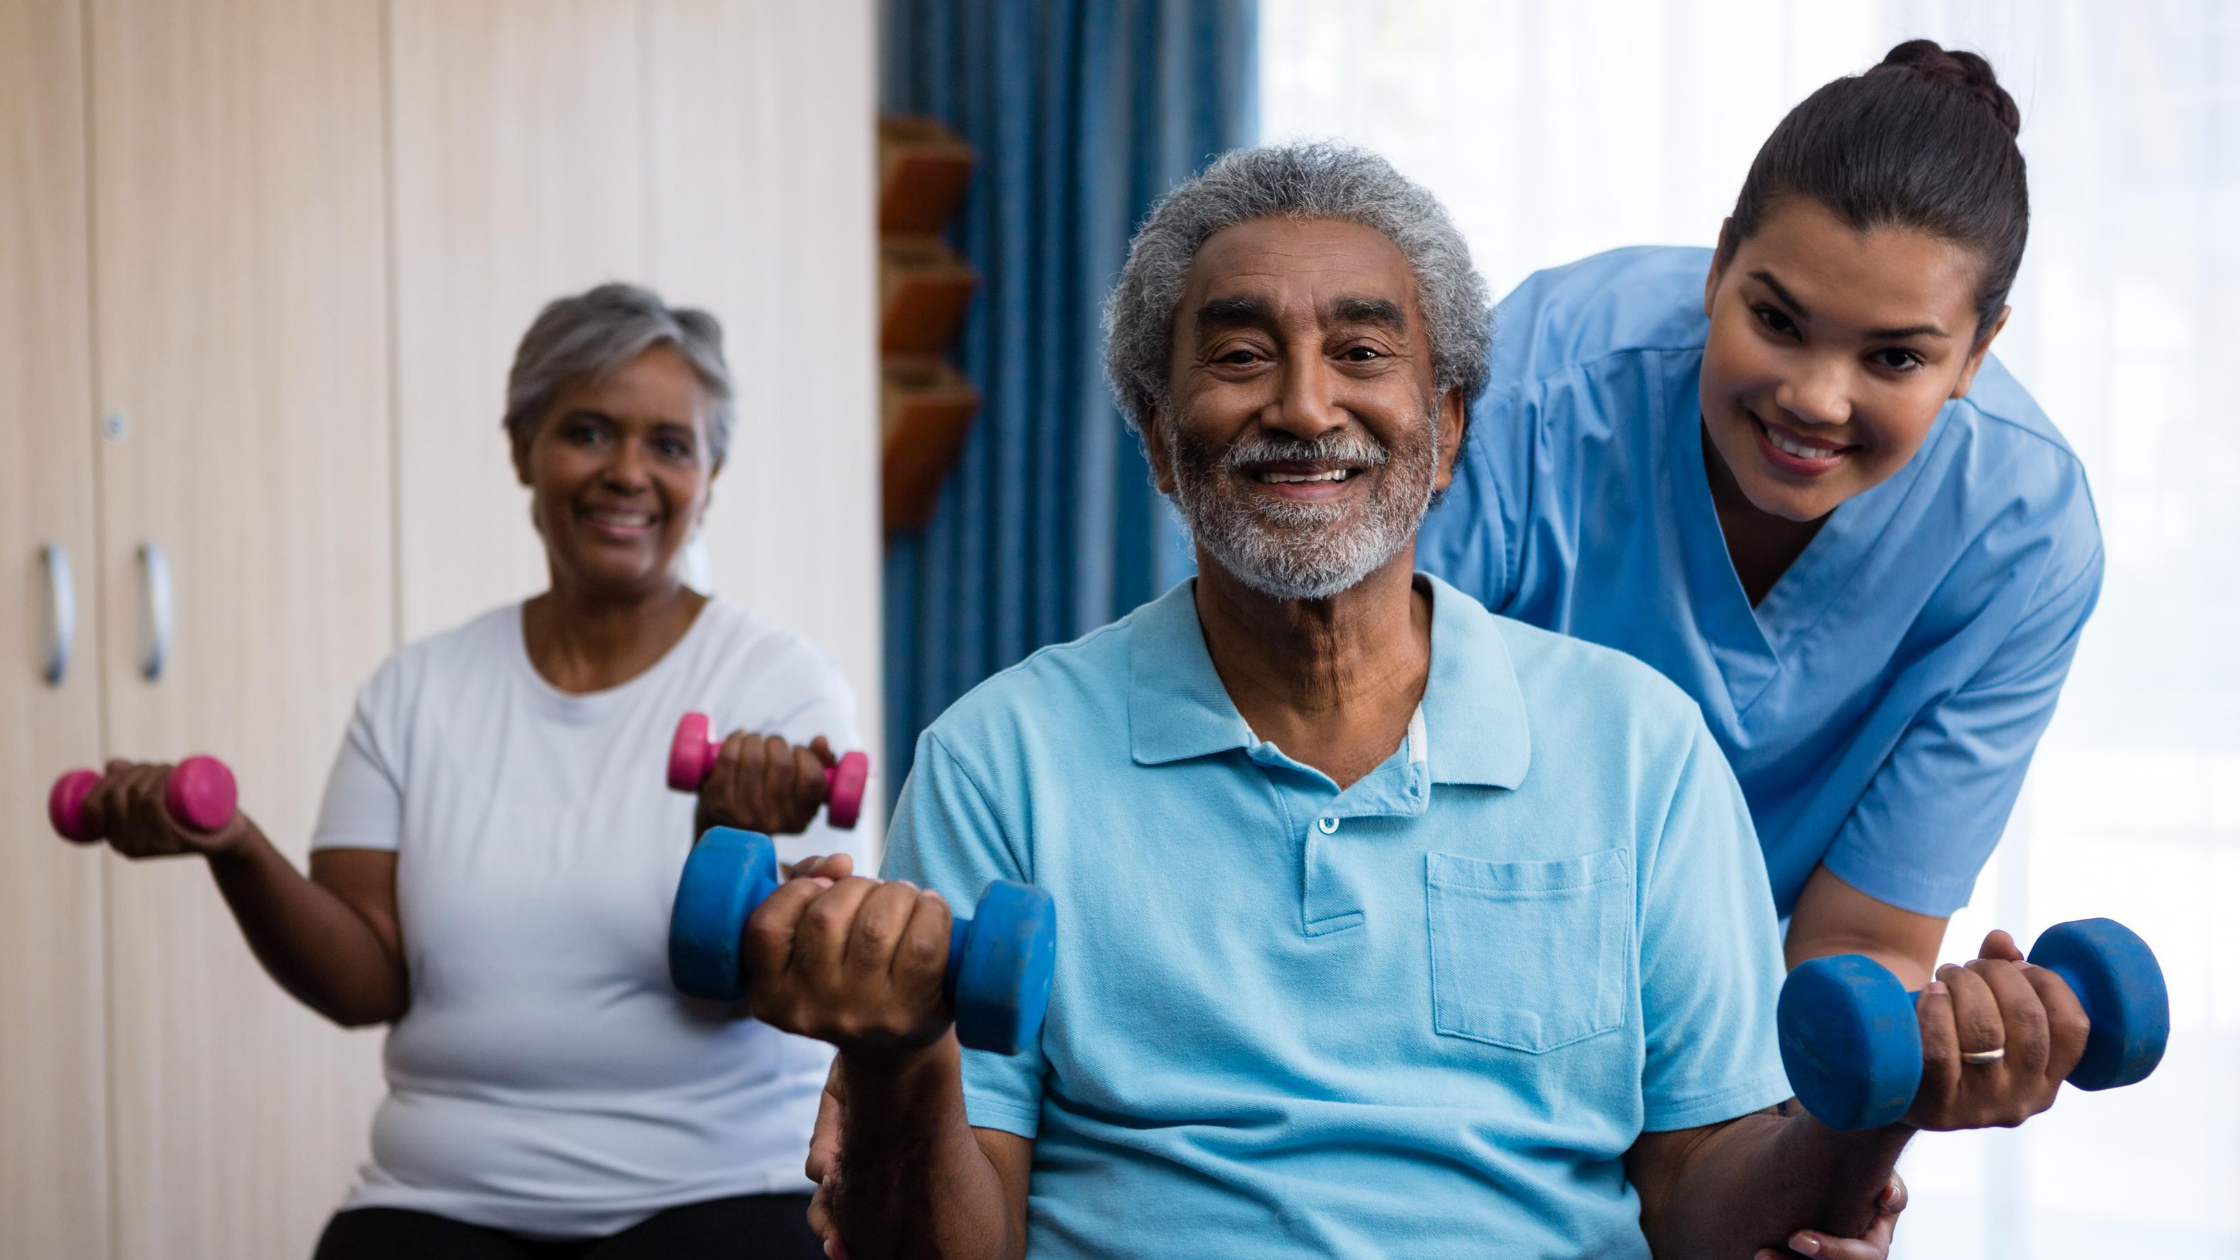 Safe Activities for Care Homes During COVID-19 Pandemic